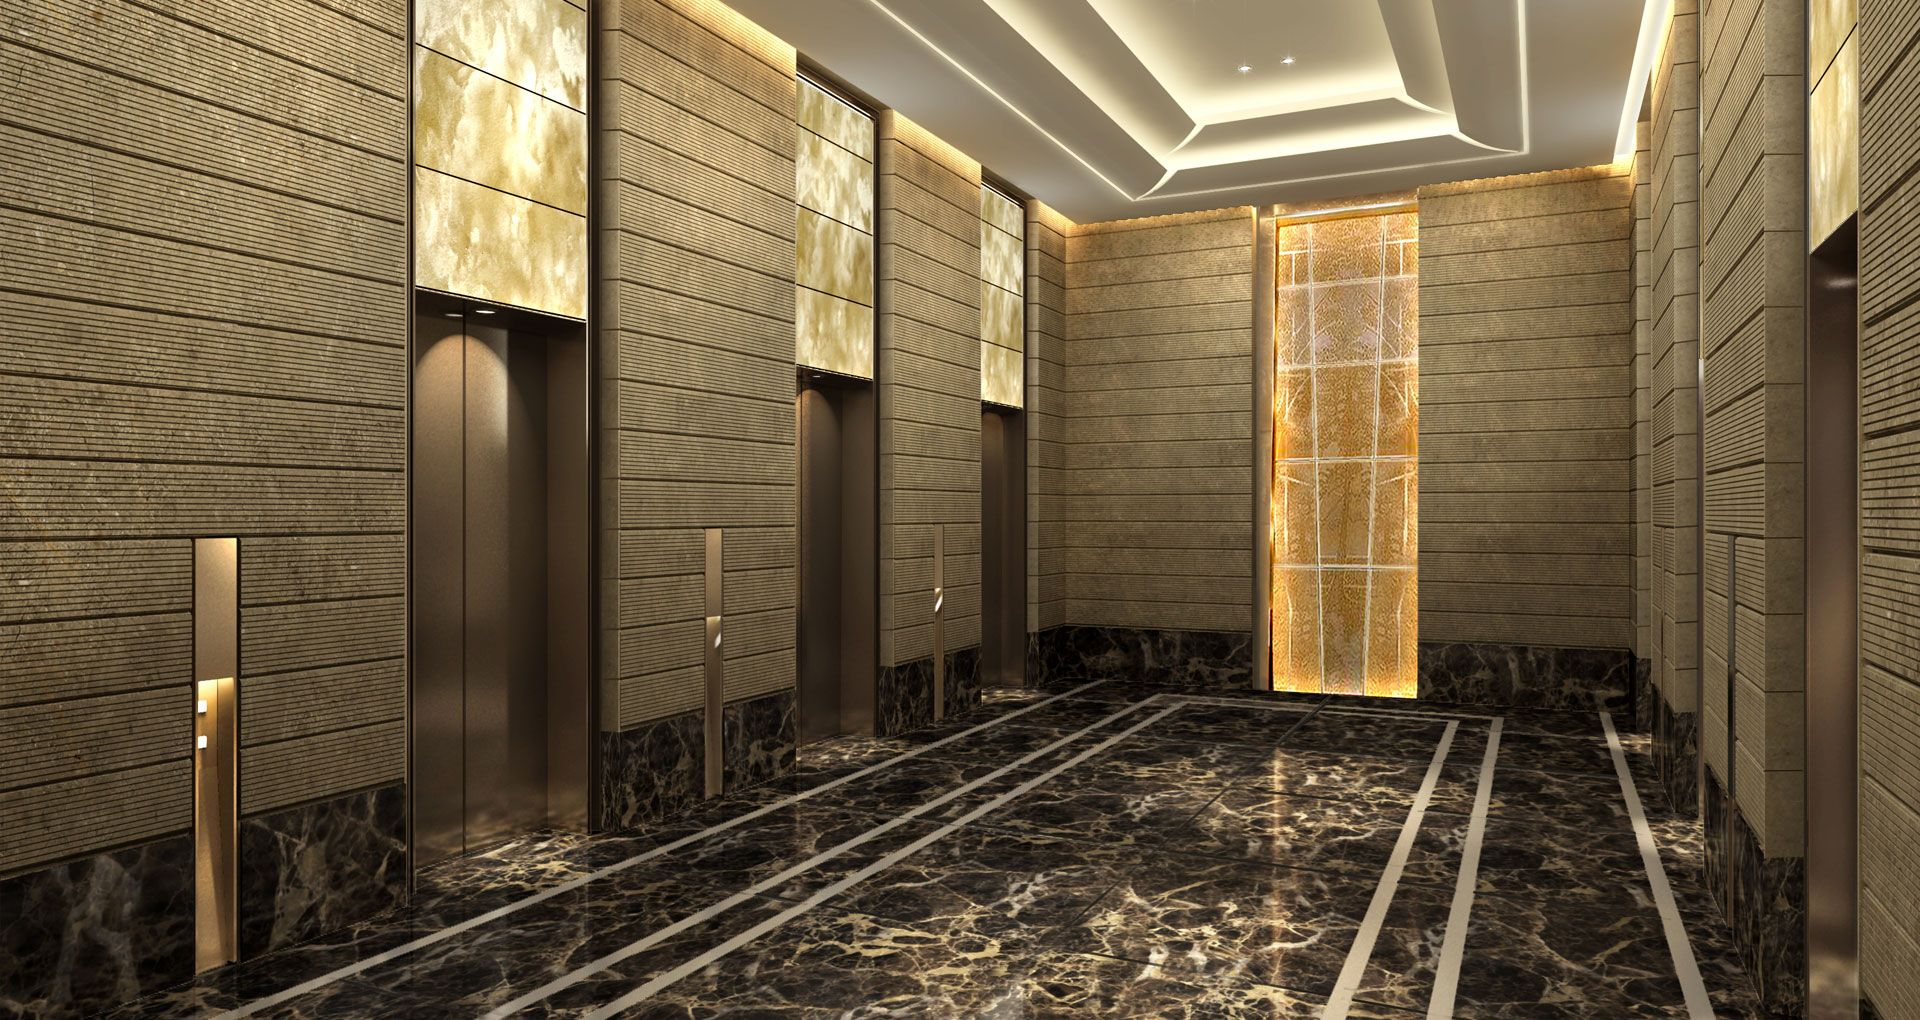 Building Entrance Design Ideas - Bing Images | Art Deco ...